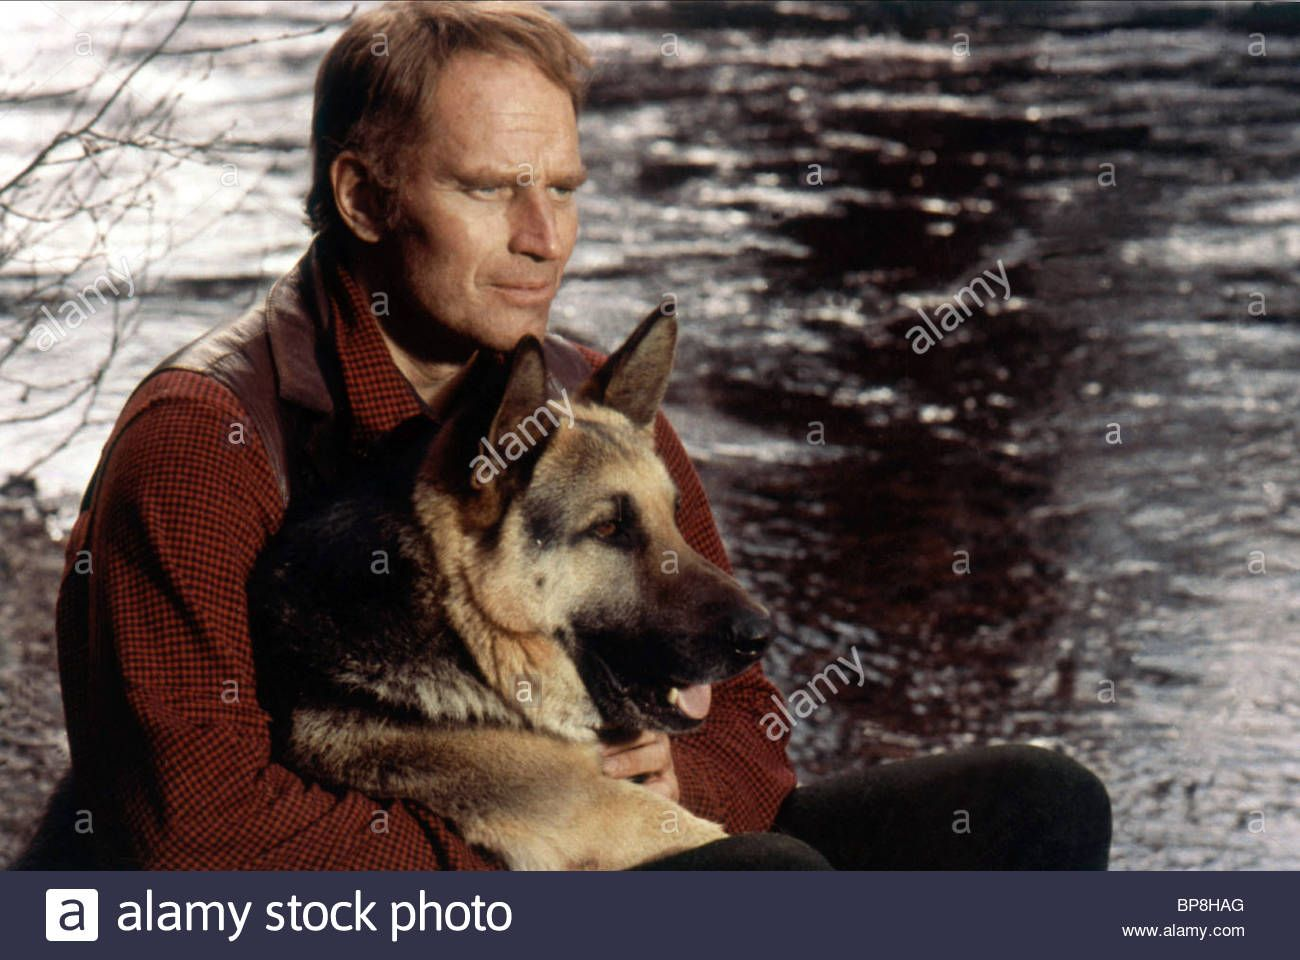 Download This Stock Image Charlton Heston The Call Of The Wild 1972 Bp8hag From Alamy S Library Of Millions Of High Re Call Of The Wild Photo Stock Photos